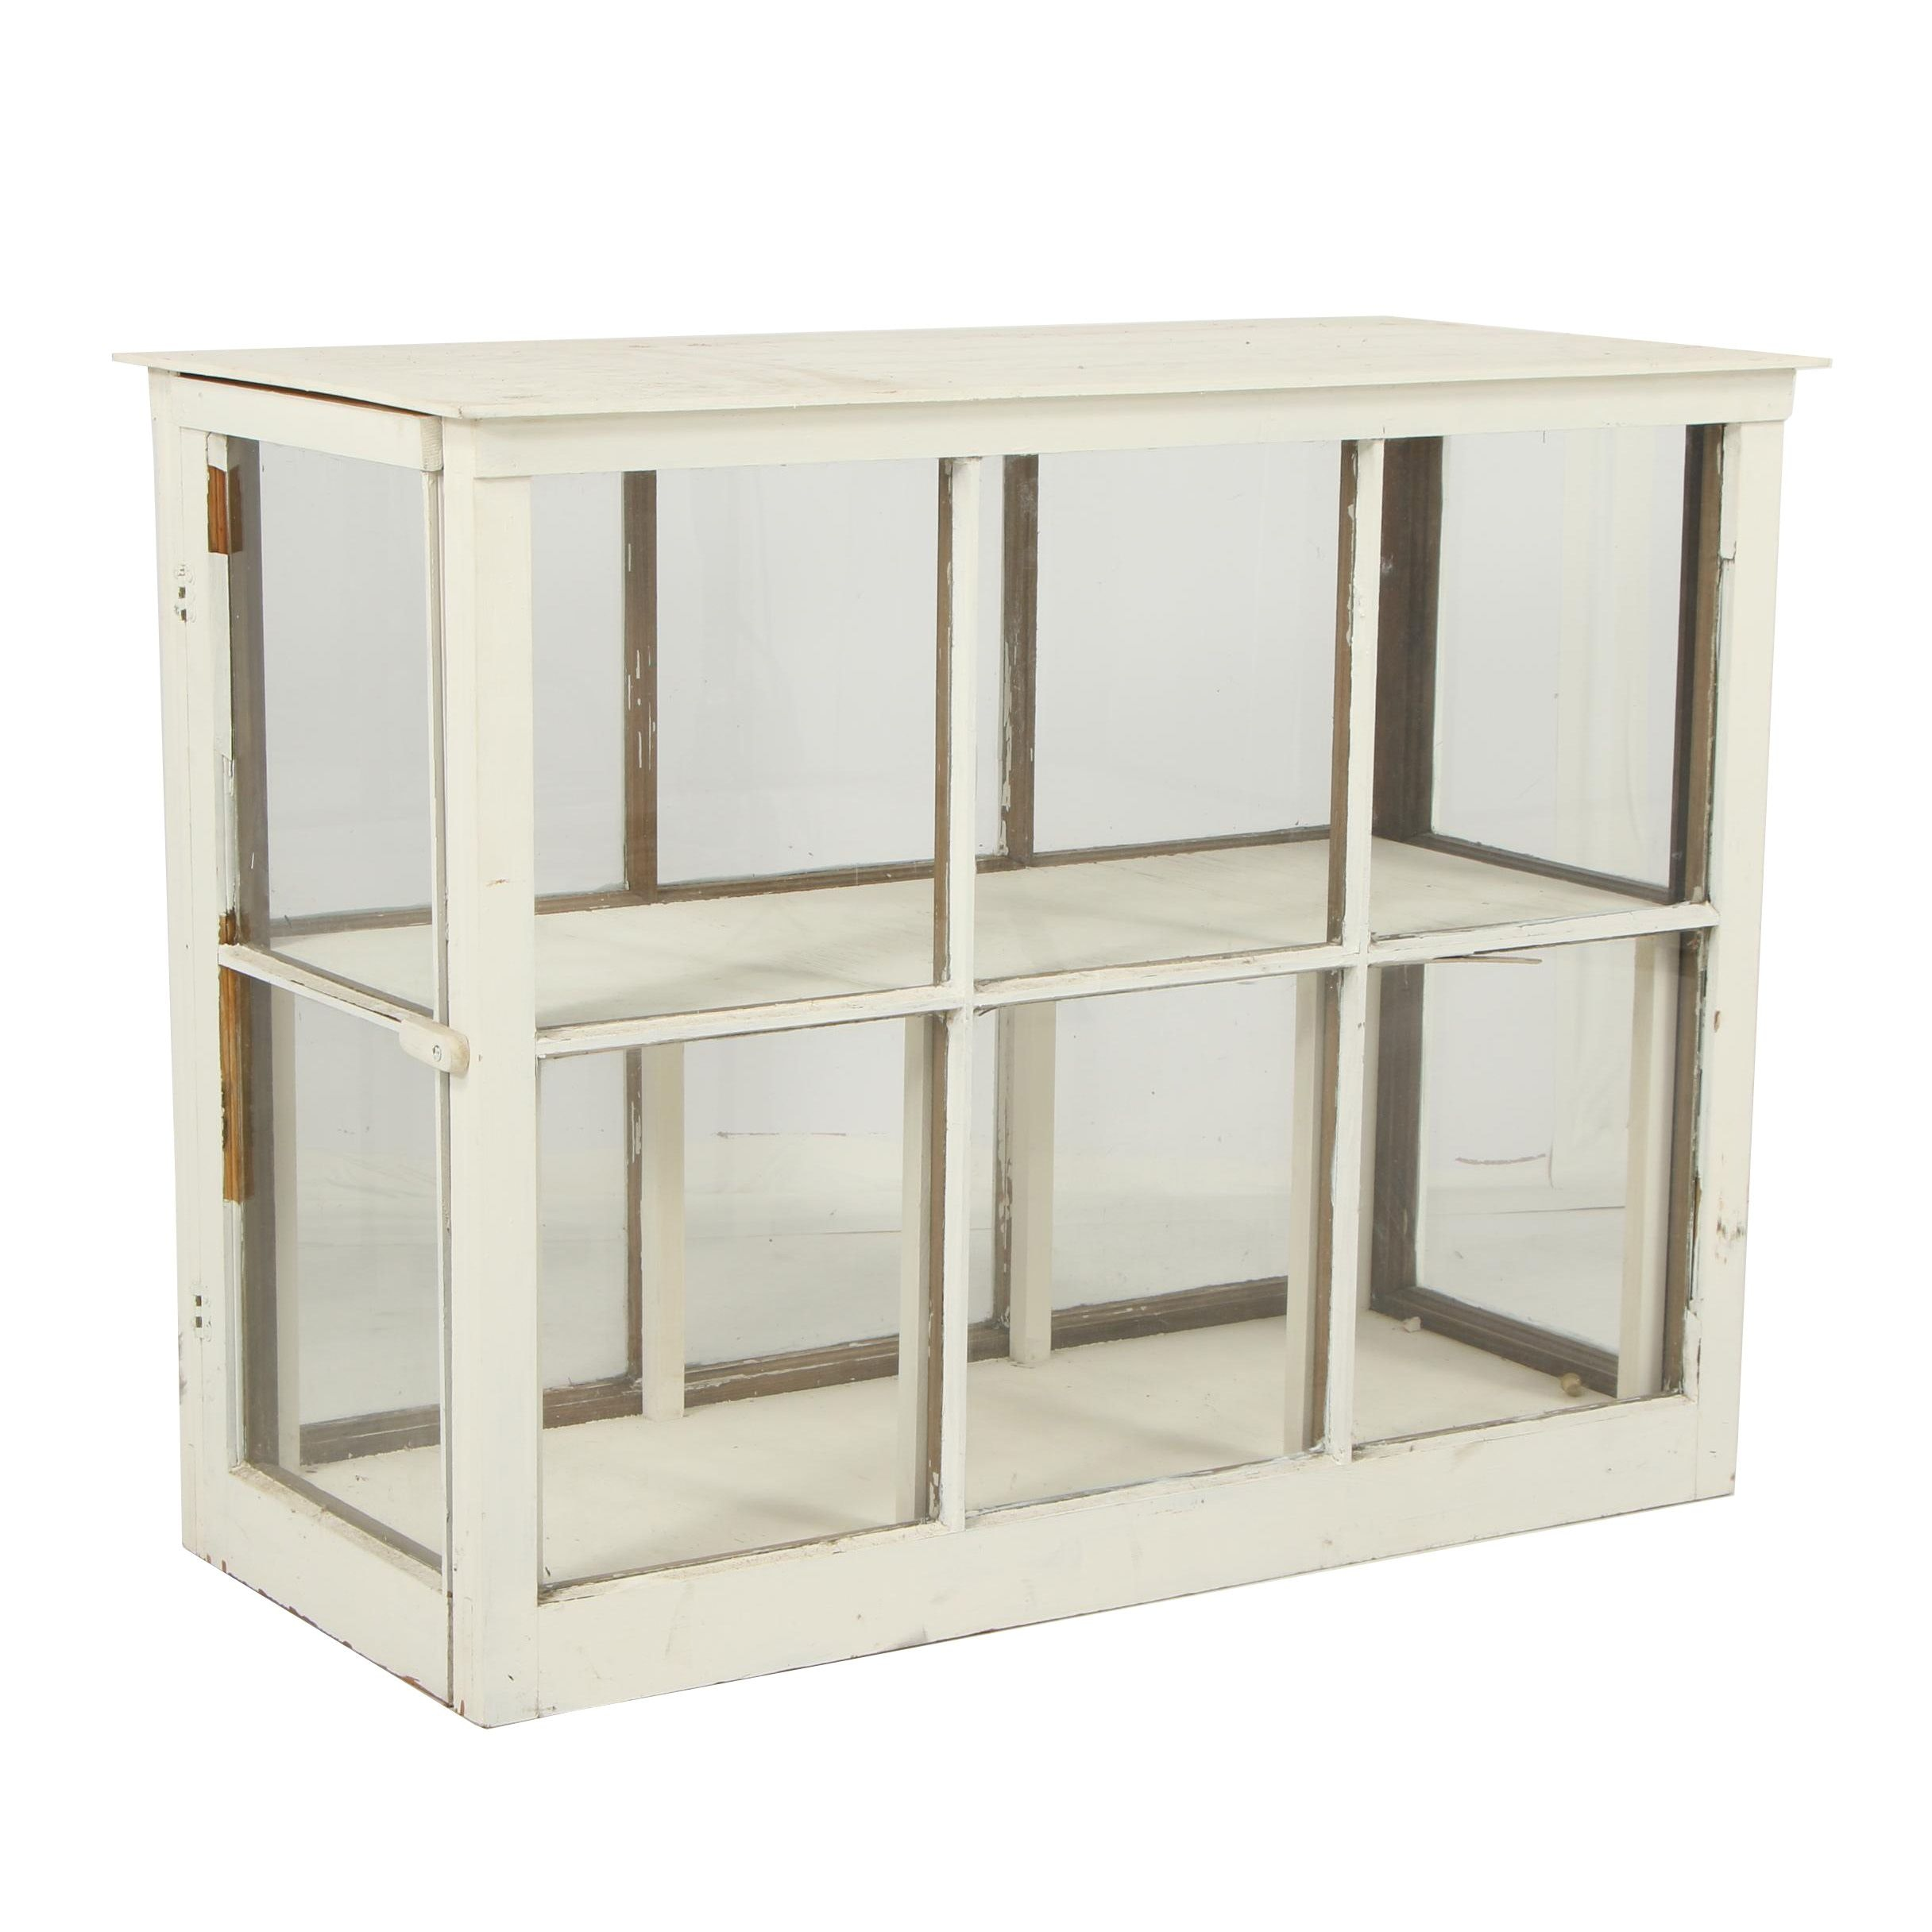 Rustic Style Painted Wood and Glass Display Case, Mid/Late 20th Century